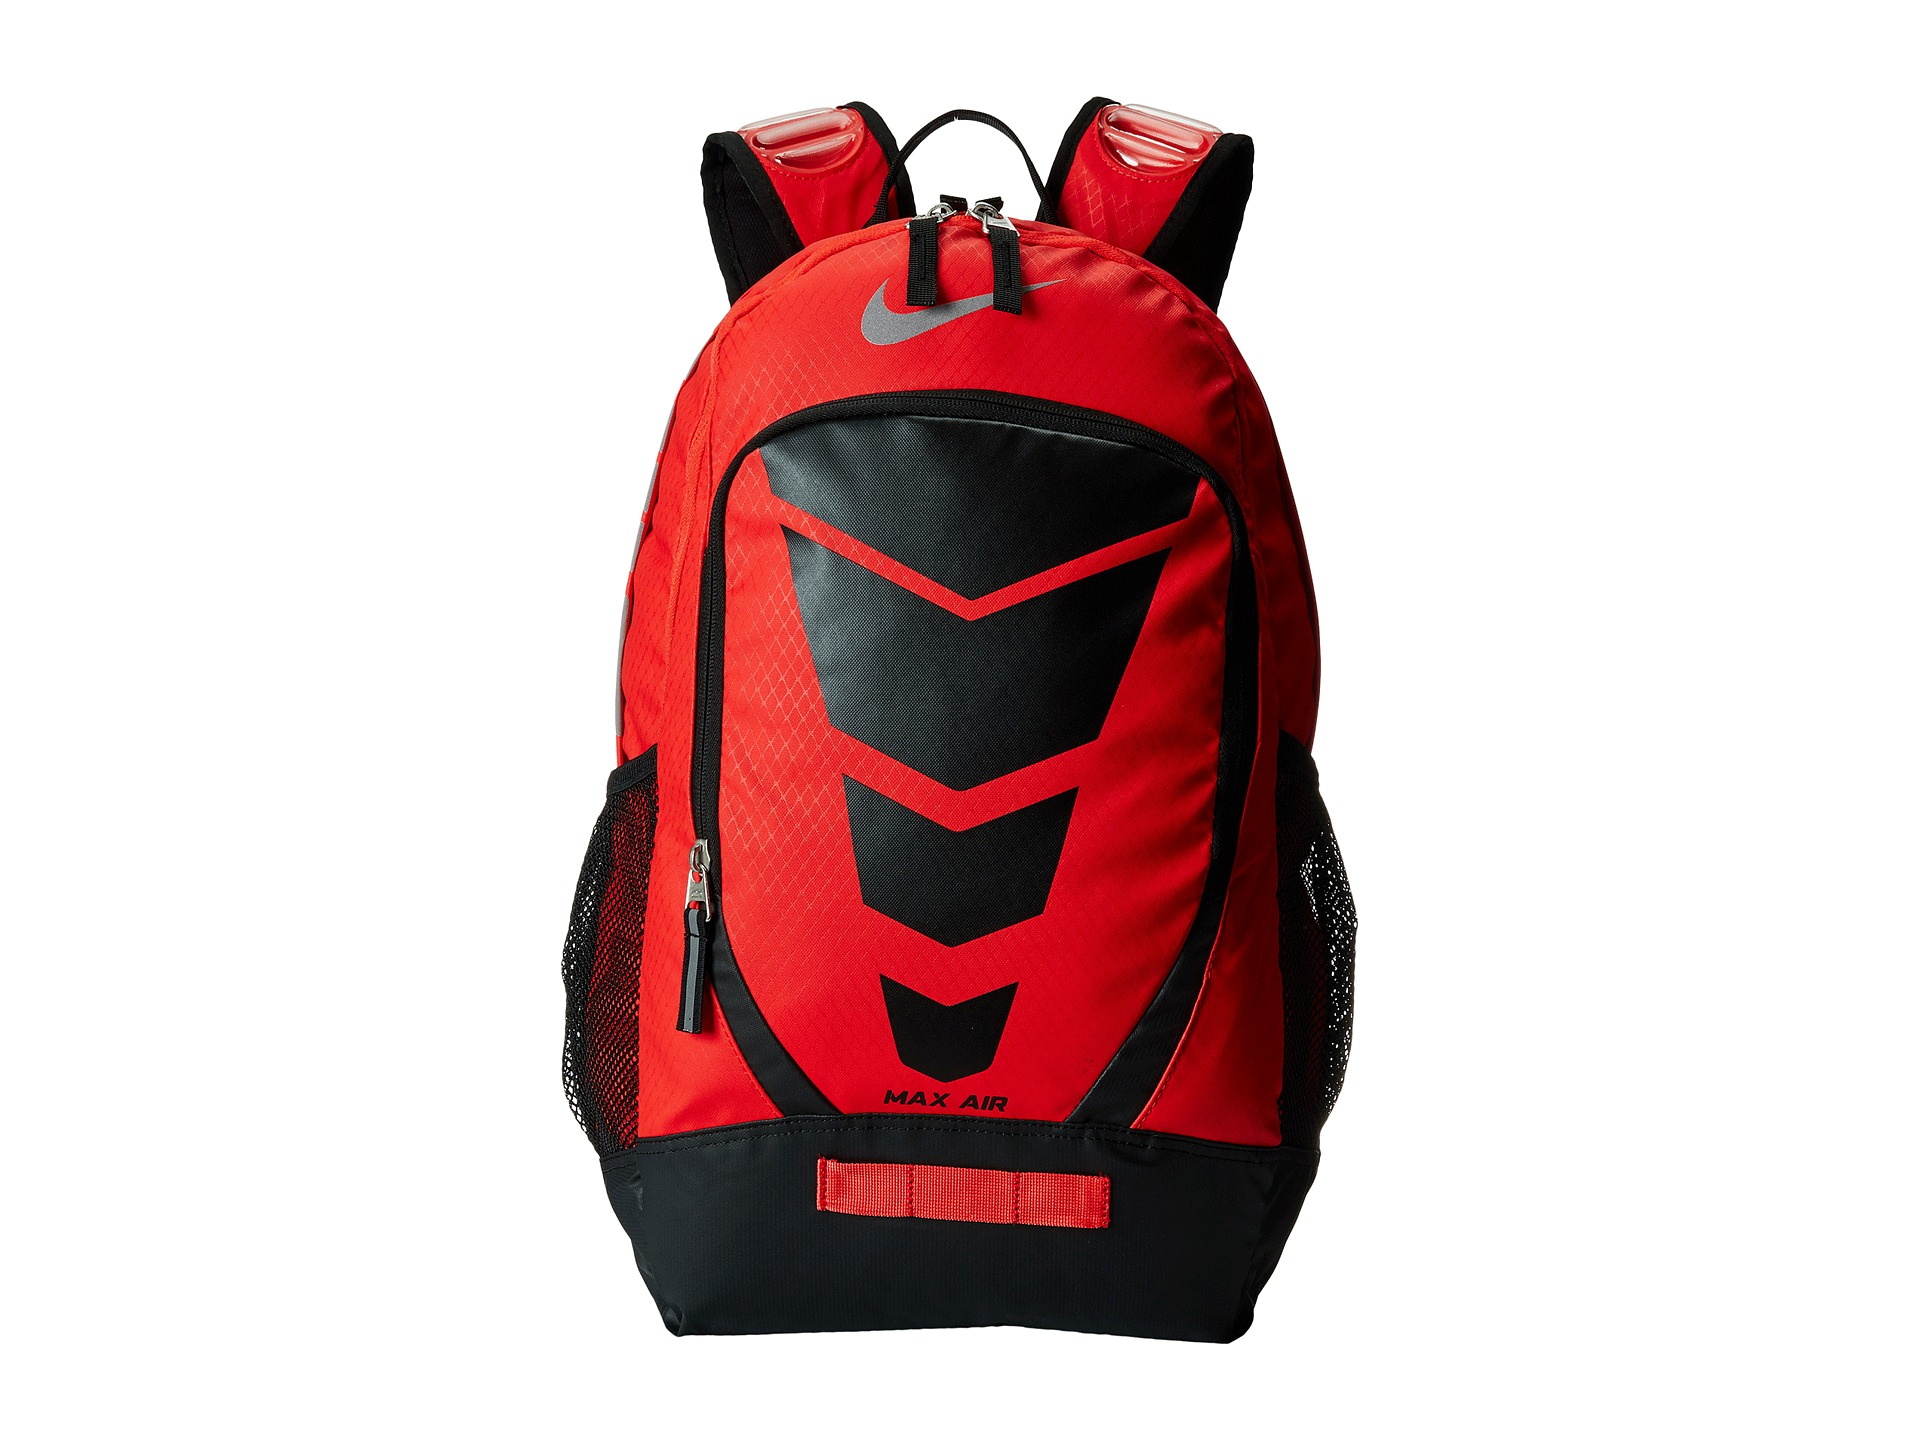 Lyst - Nike Max Air Vapor Backpack in Red for Men e997541b2